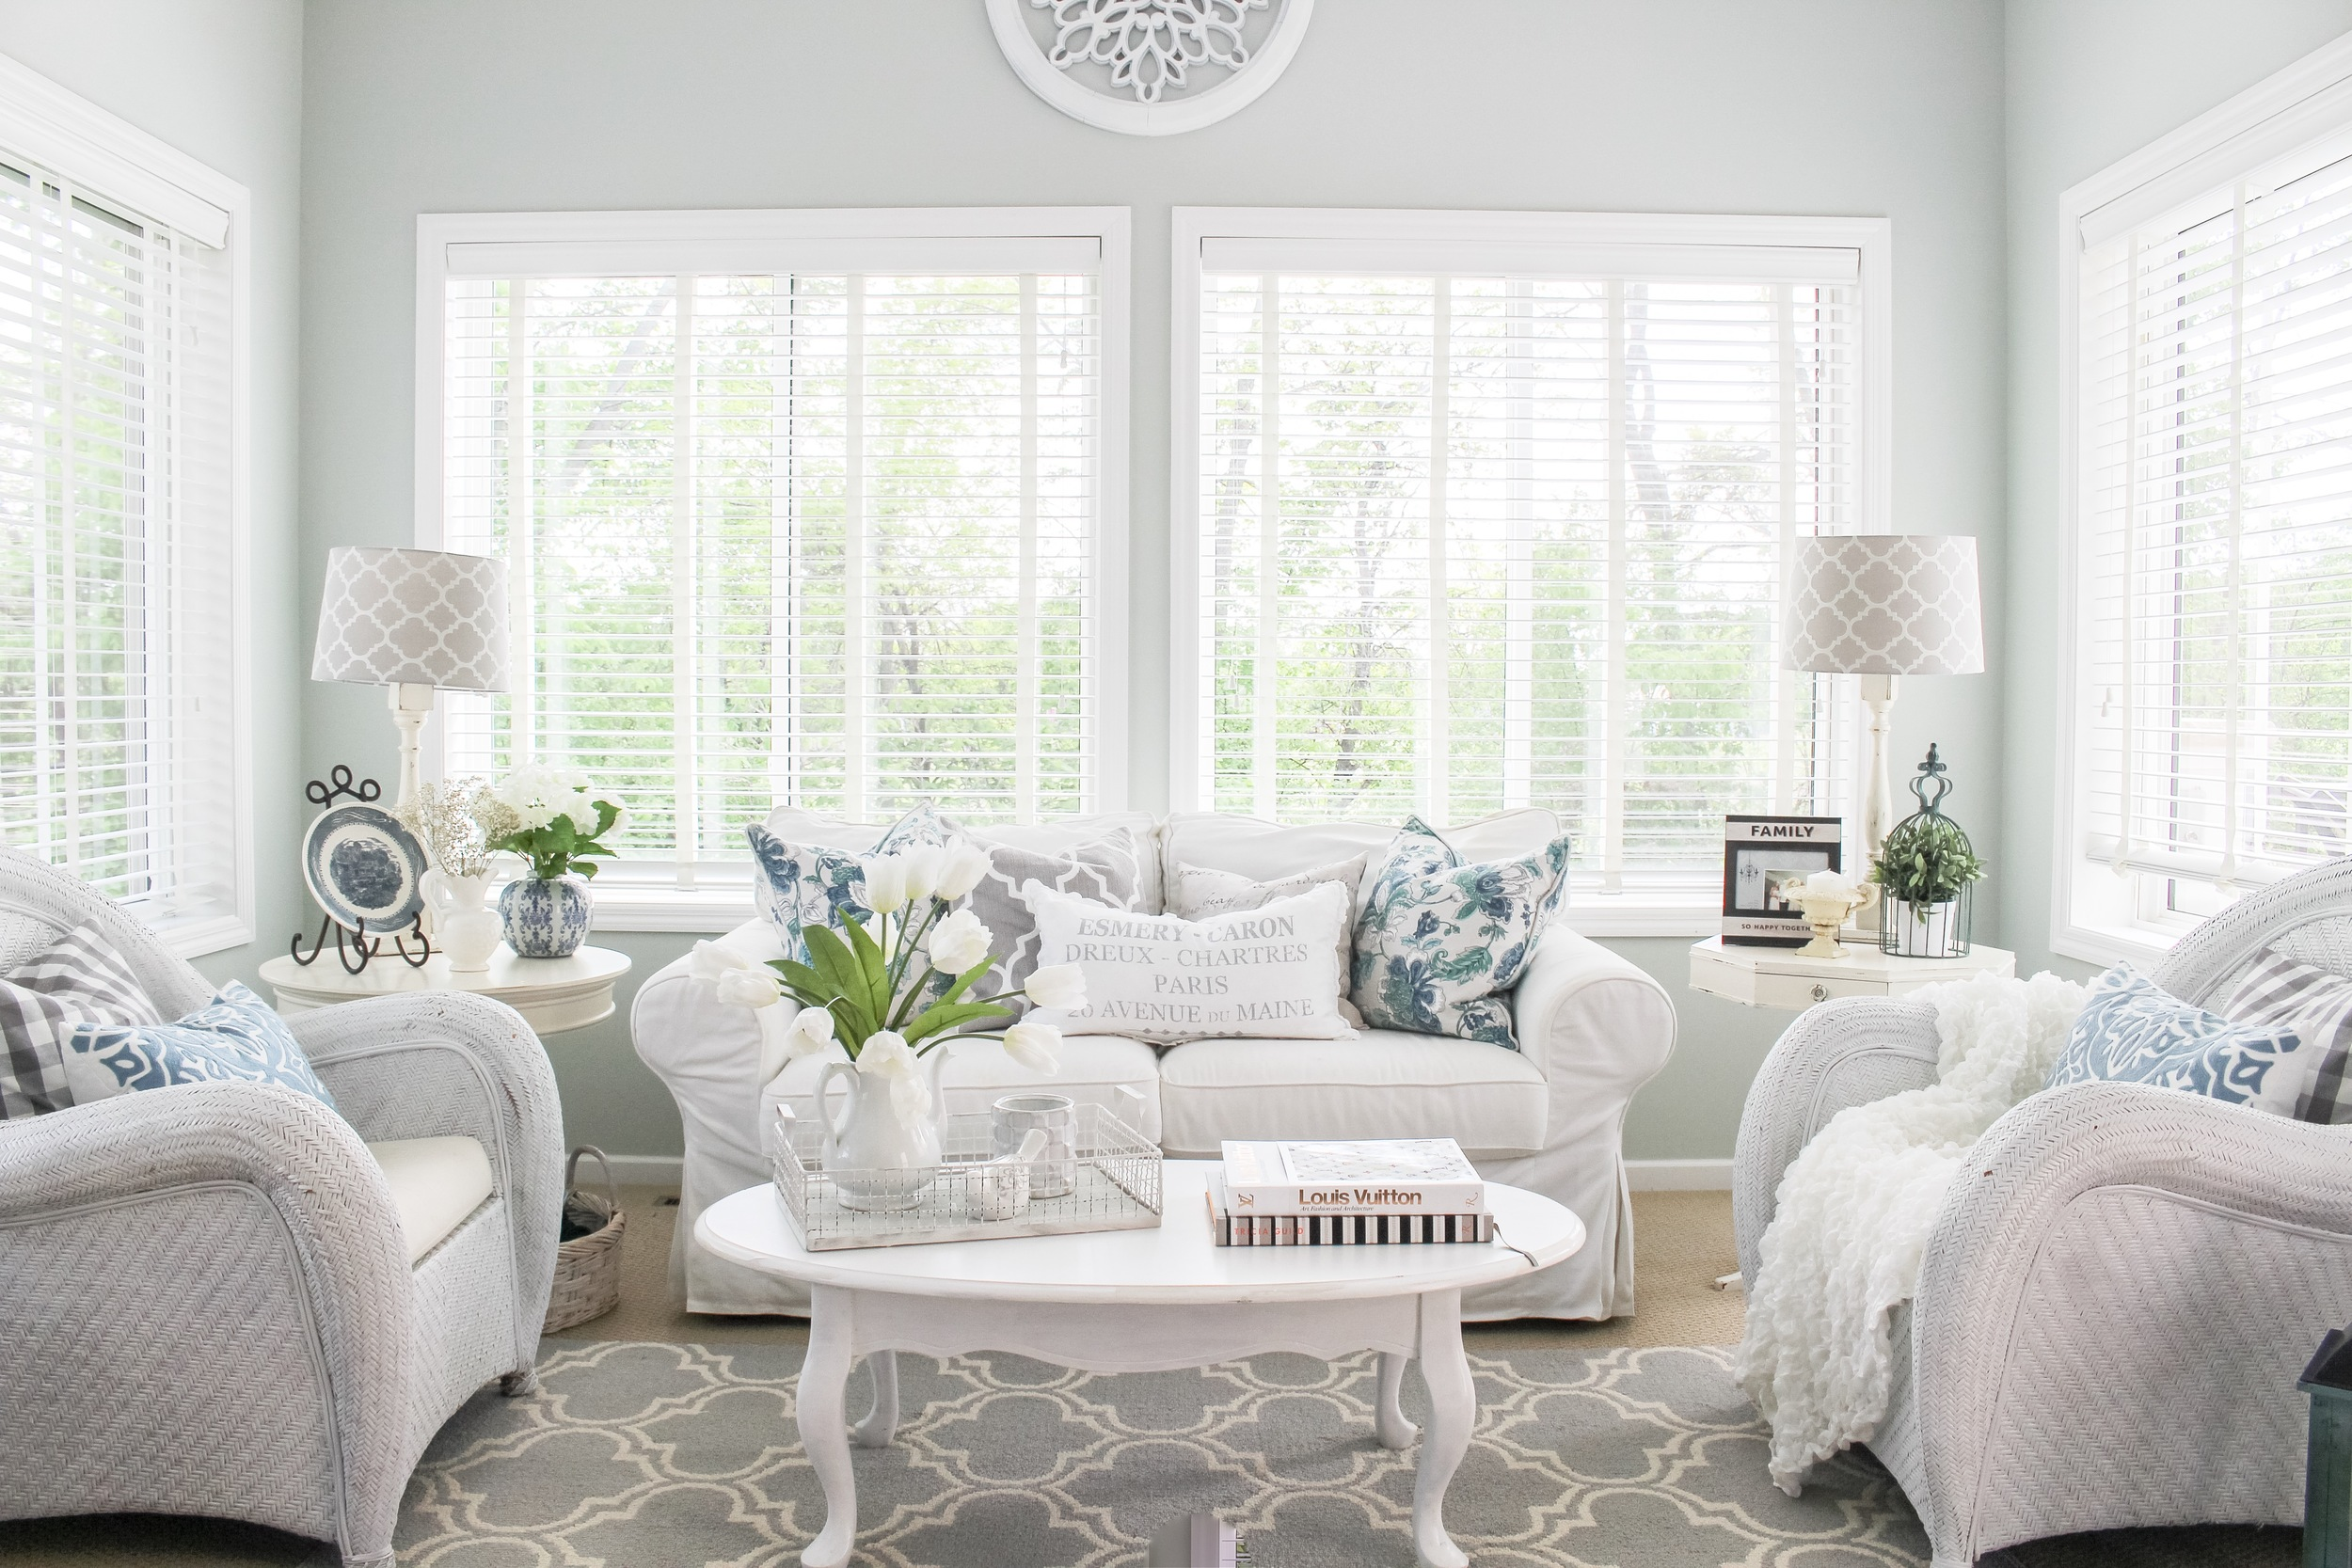 curtains is ceiling a timberchic upgrade new maine shop with curtain created beautiful of